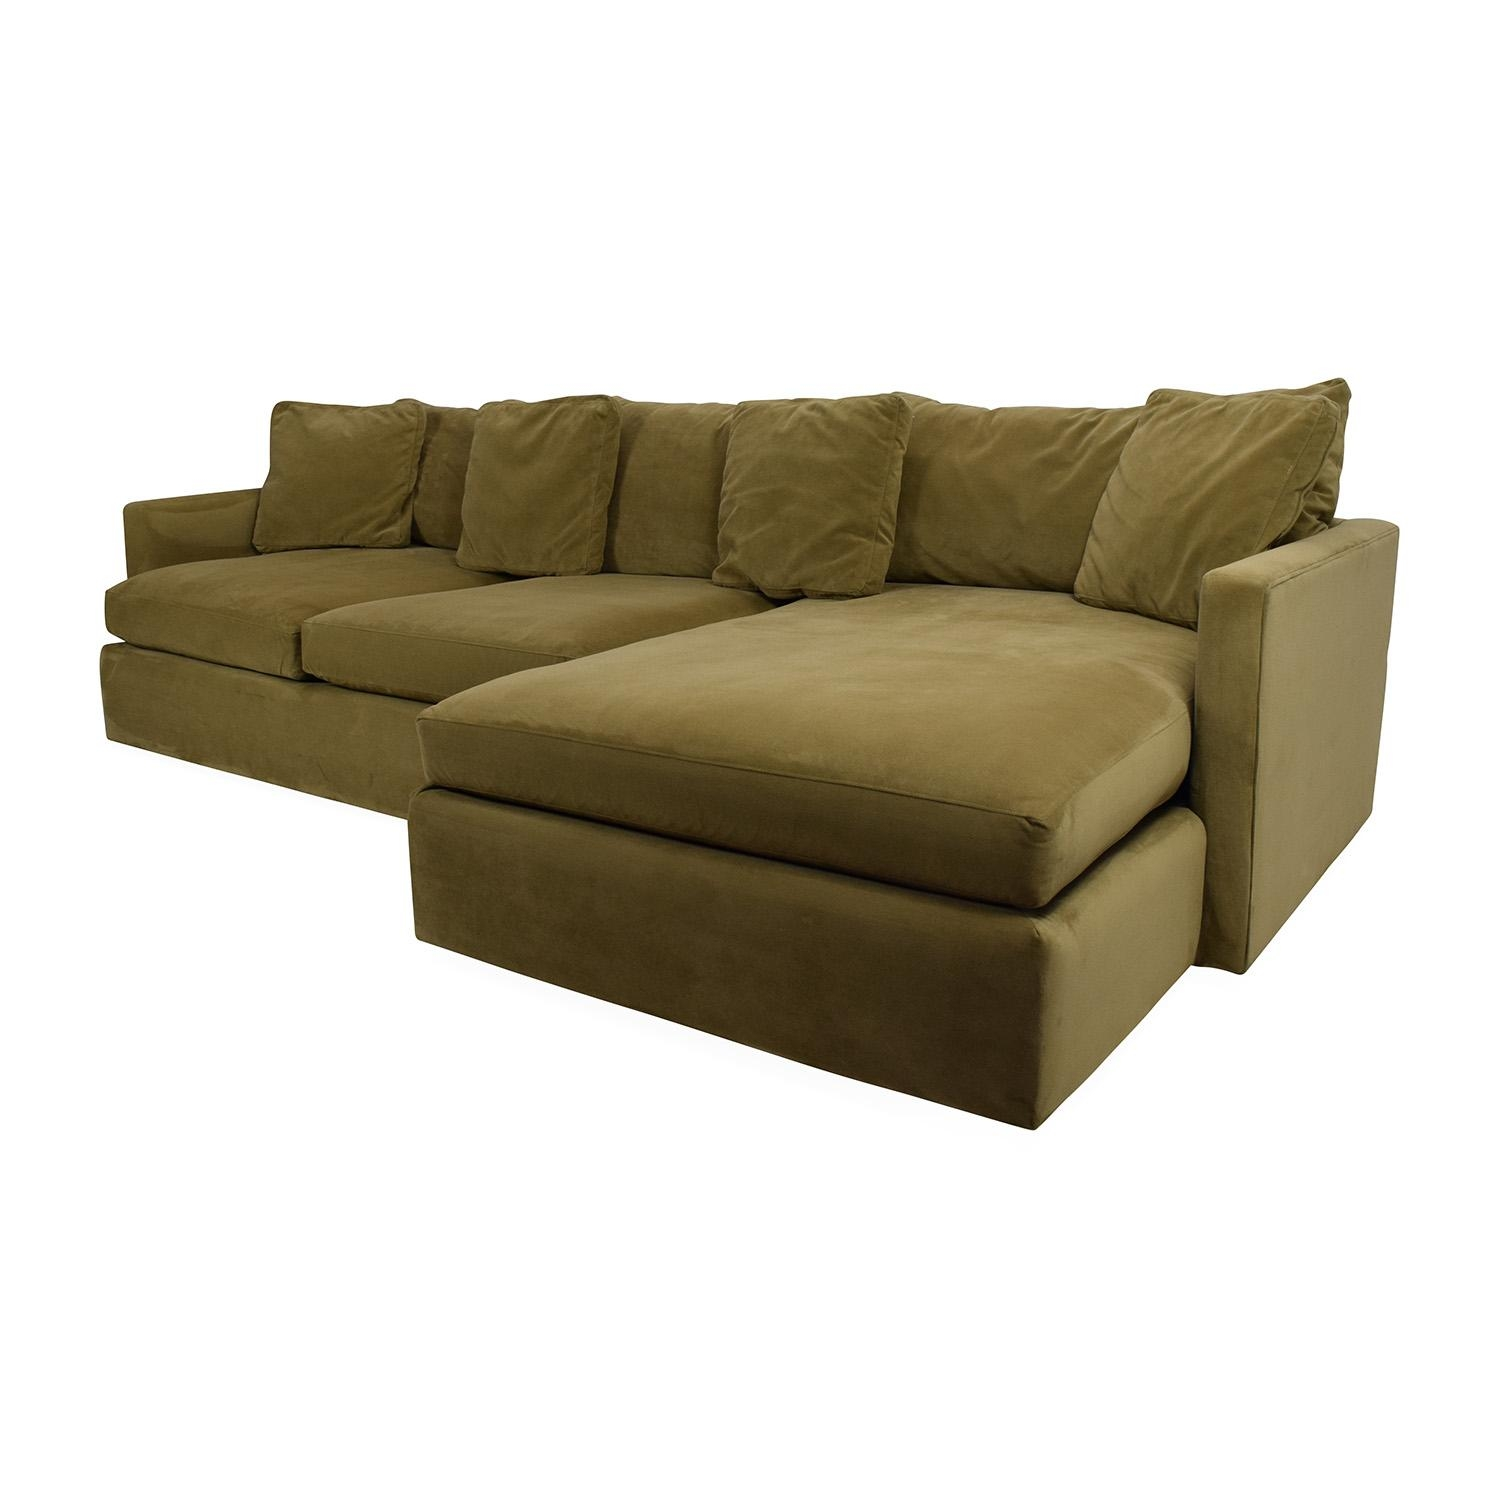 65% Off - Crate And Barrel Crate And Barrel Lounge Ii Sectional within Crate And Barrel Sectional